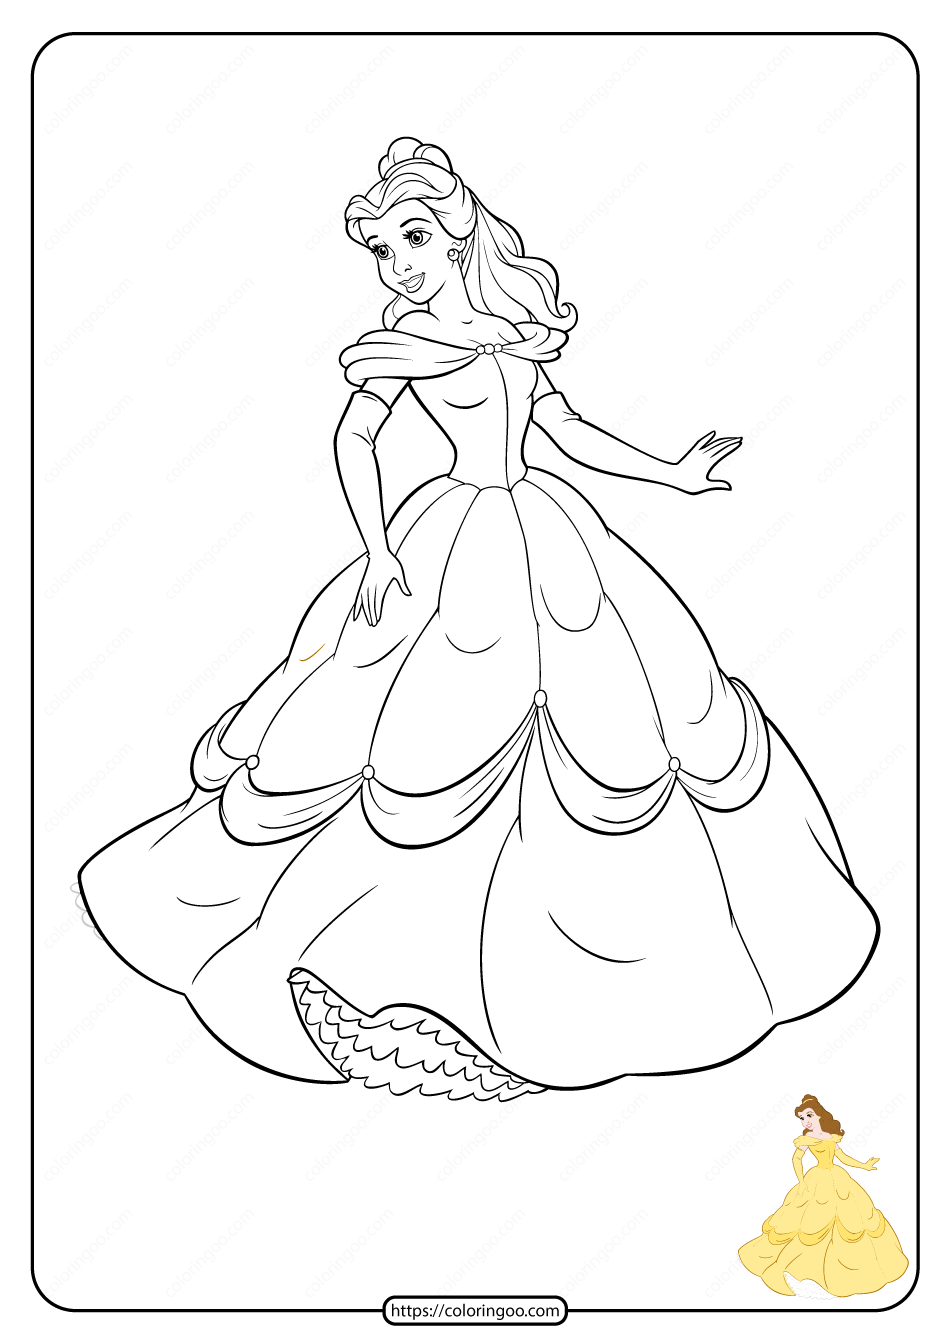 Free Printable Disney Princess Coloring Pages 03